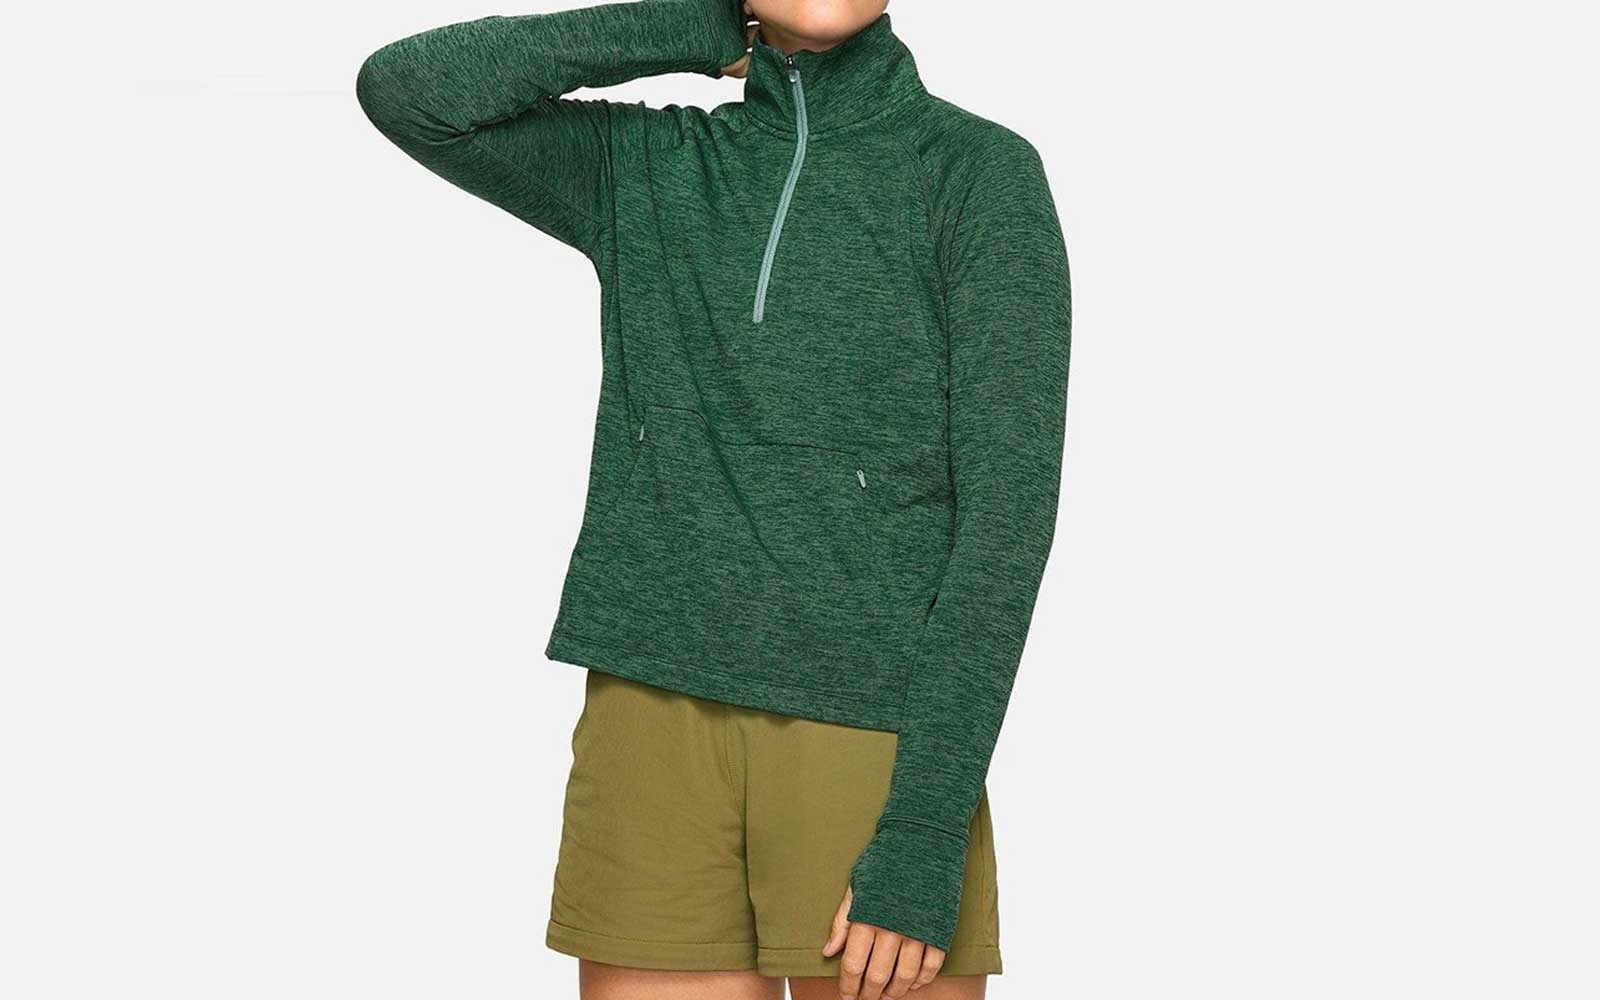 Green Outdoor Voices Zip-up Fleece